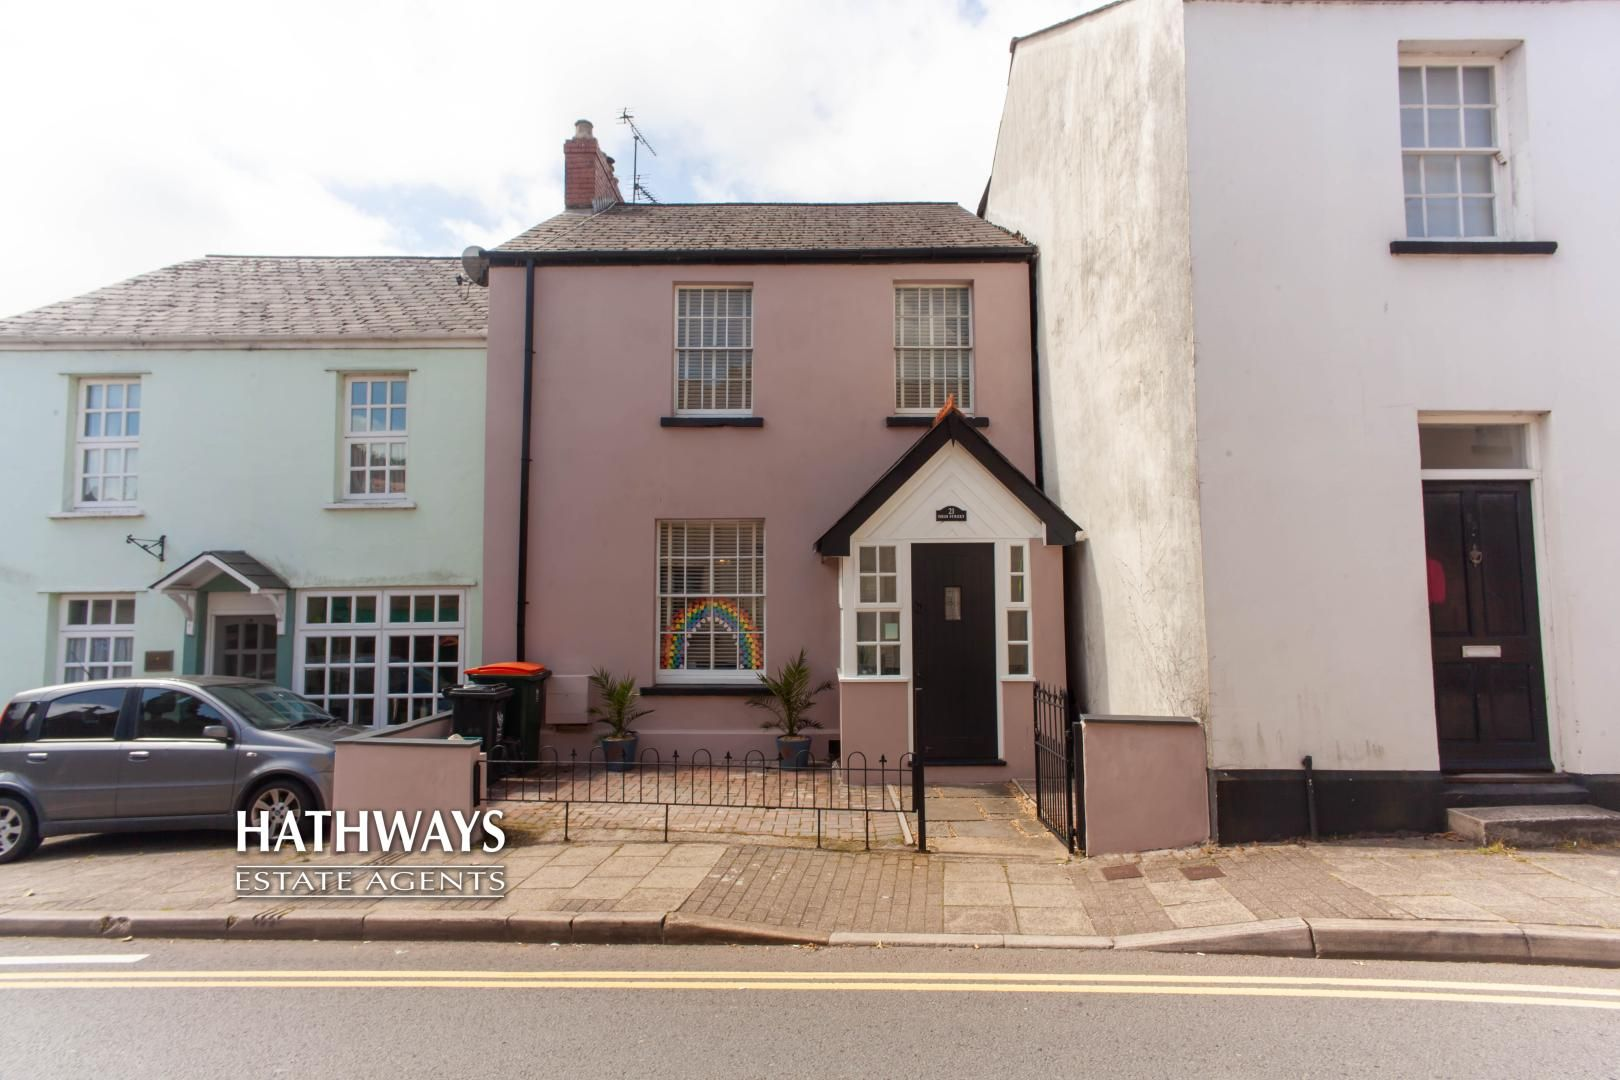 4 bed house for sale in High Street, NP18